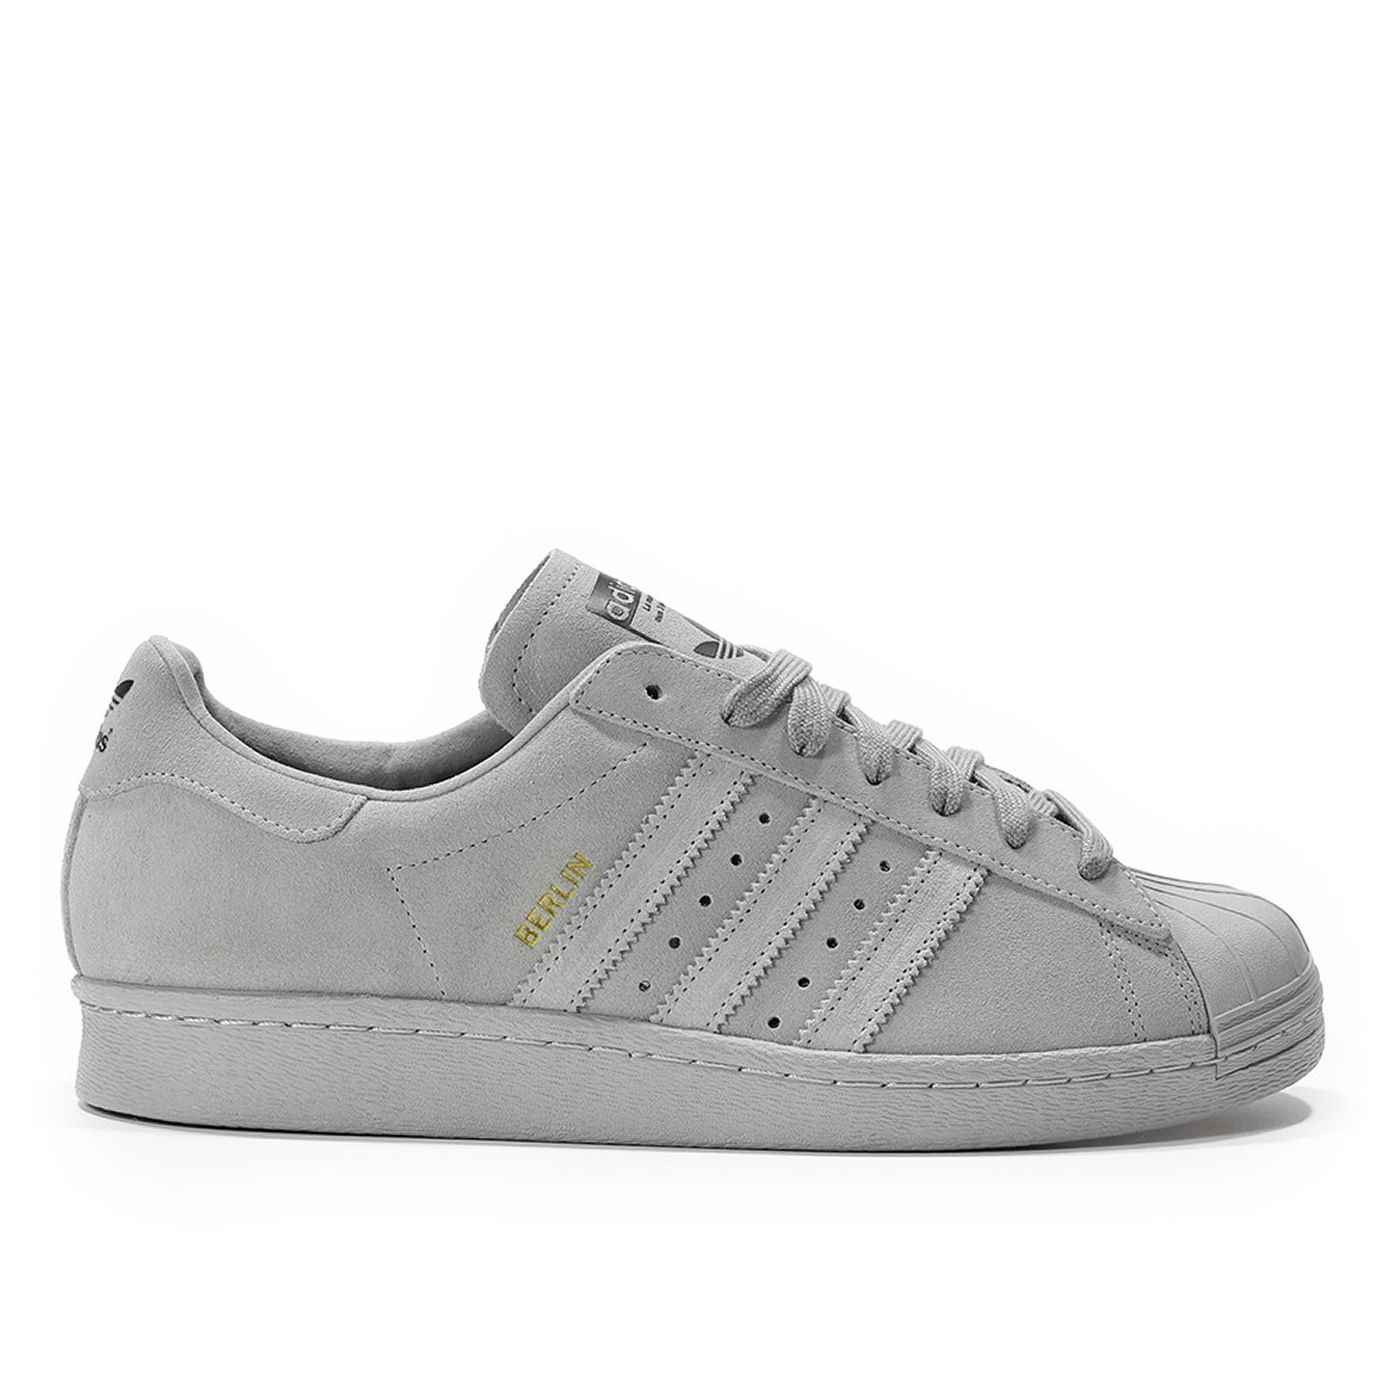 adidas Superstar 80s City Series 'Berlin' Grau UEBERVART